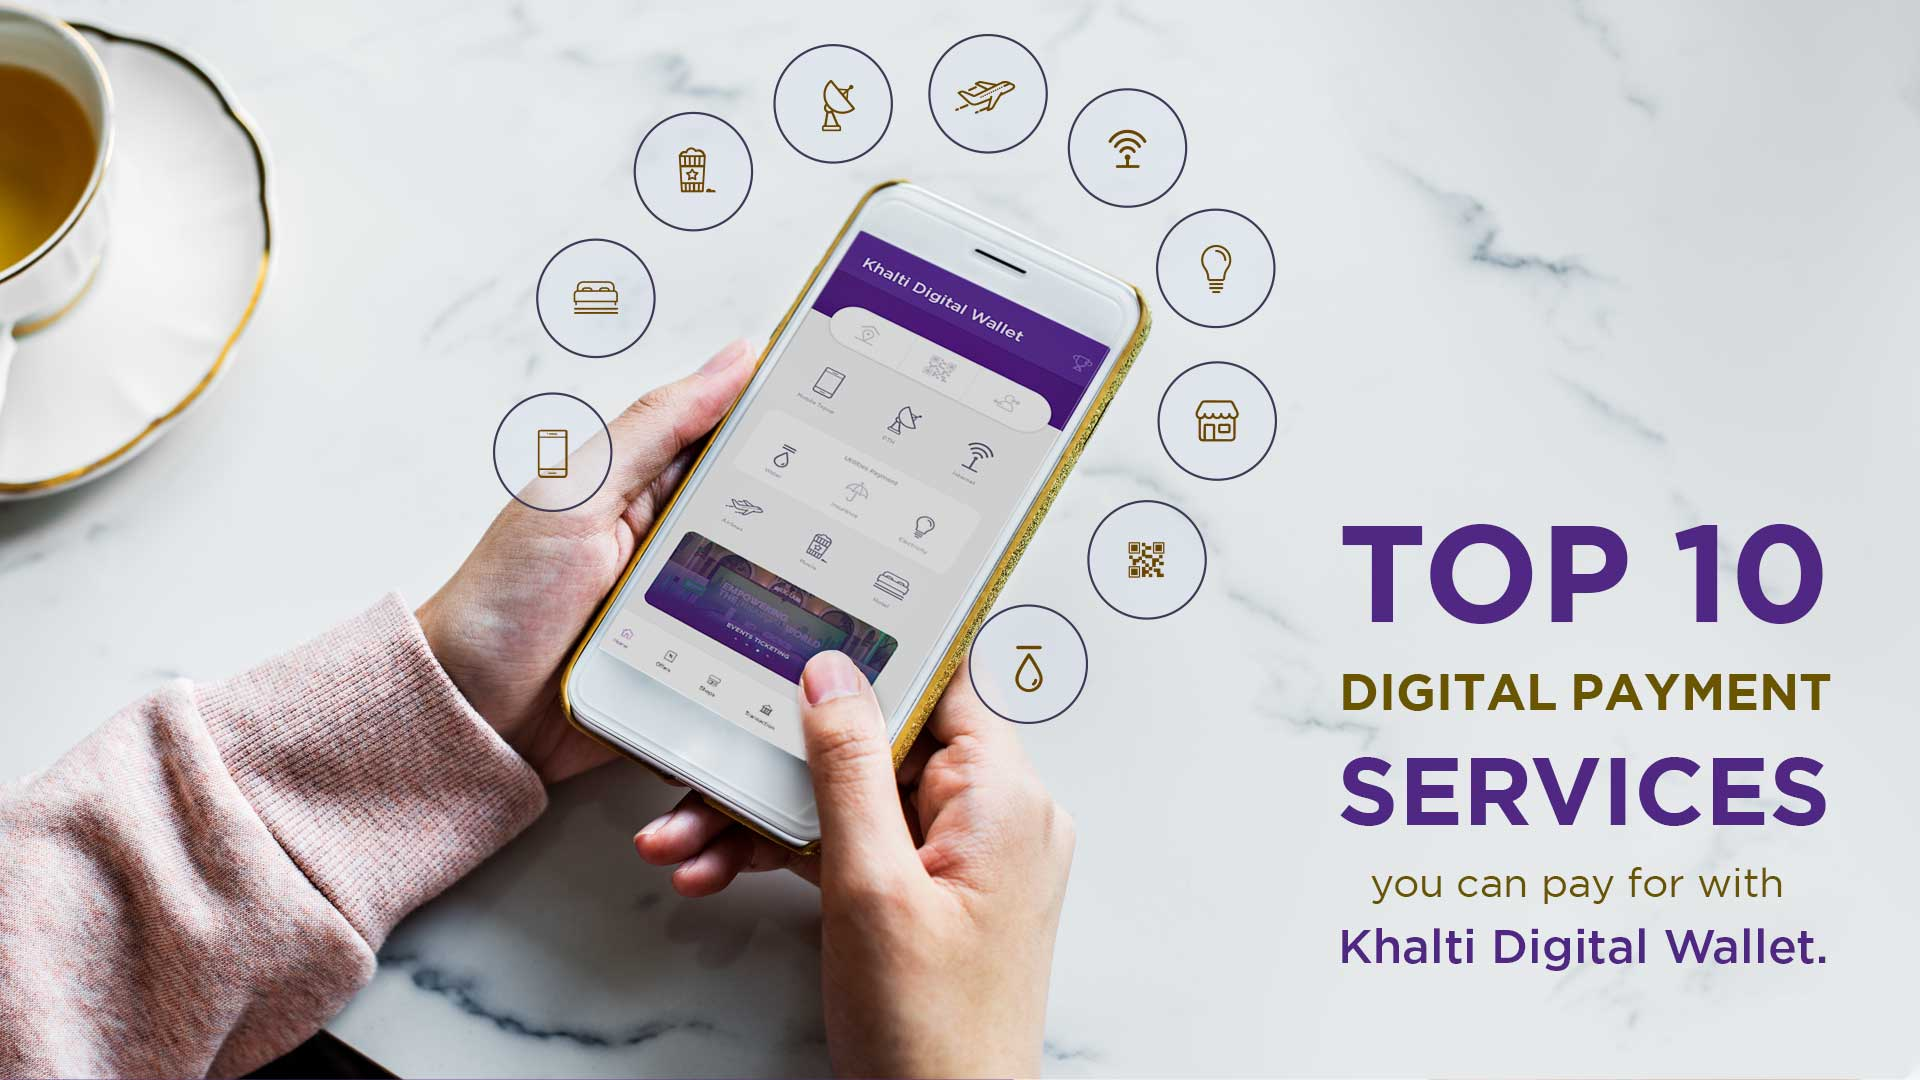 Top 10 digital payment services that you can use via Khalti to make your life easier